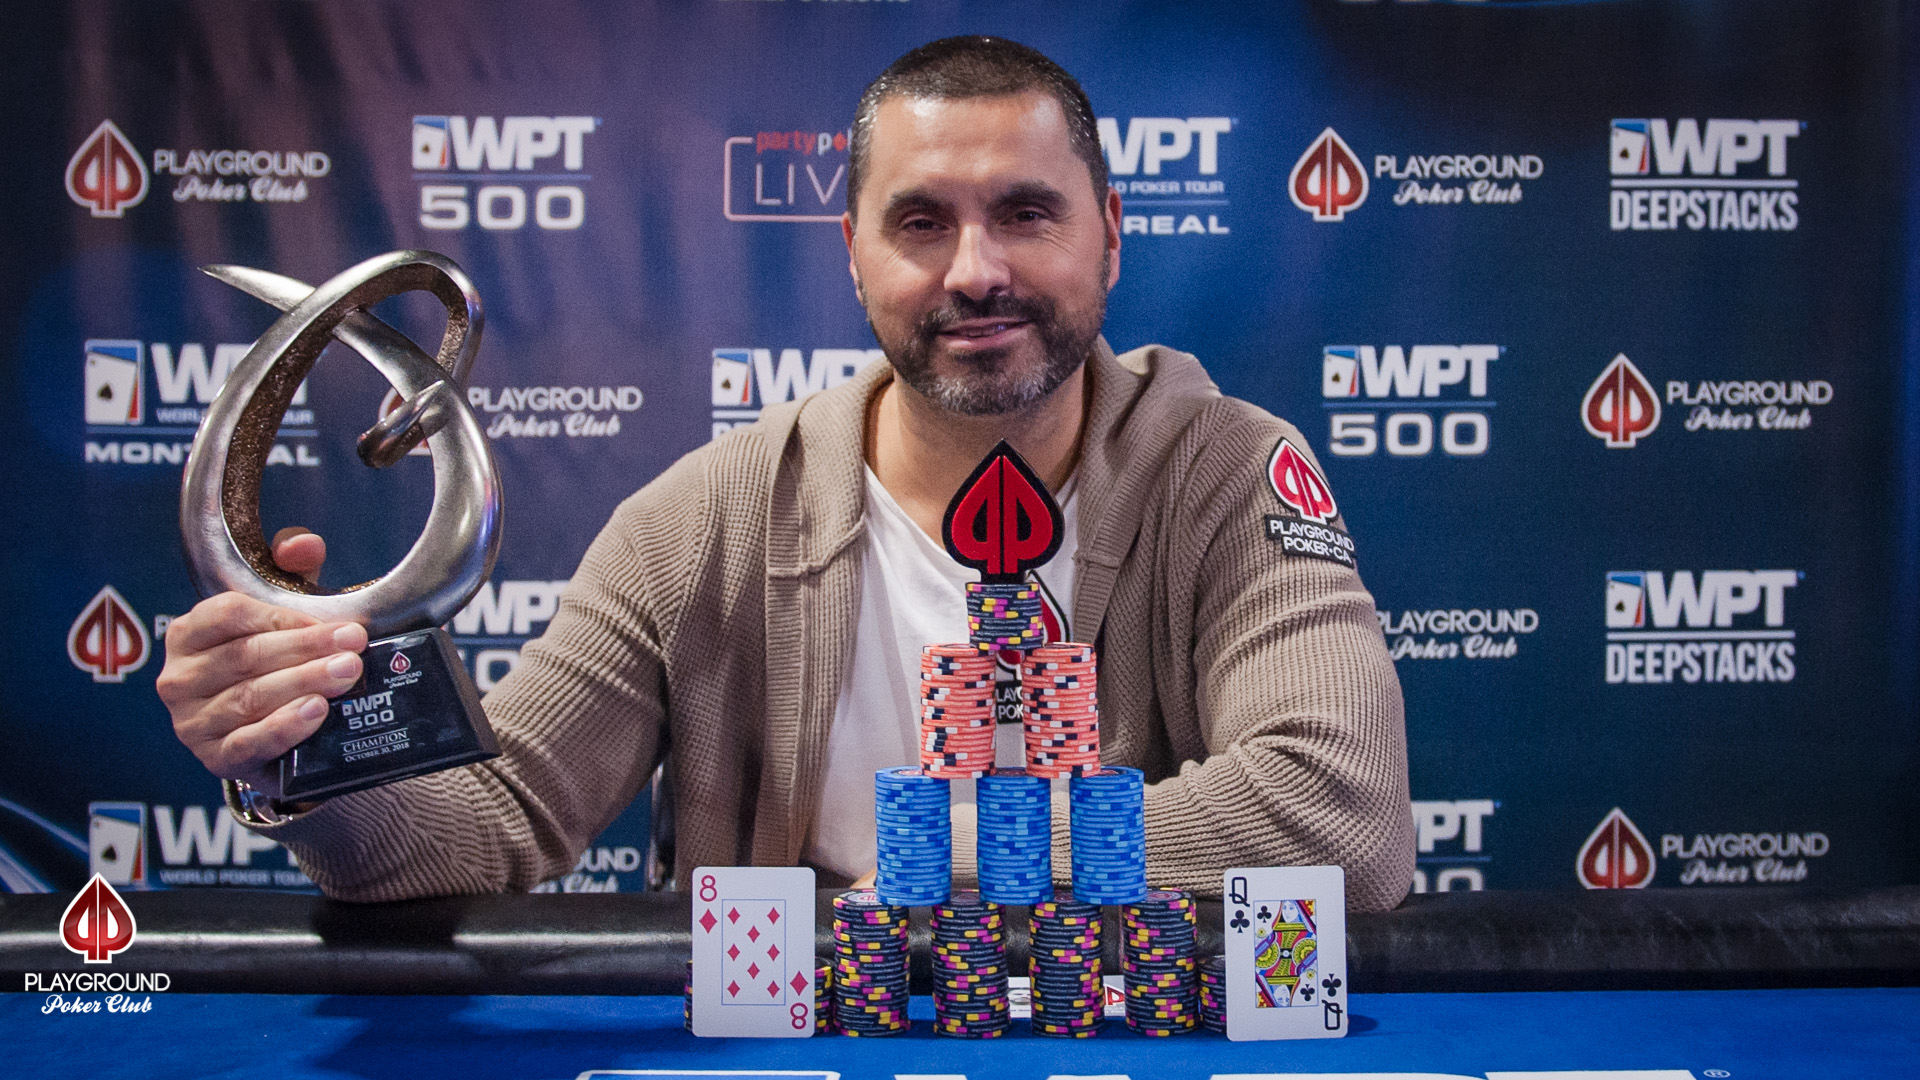 Miguel Goncalo claims the WPT500 Trophy